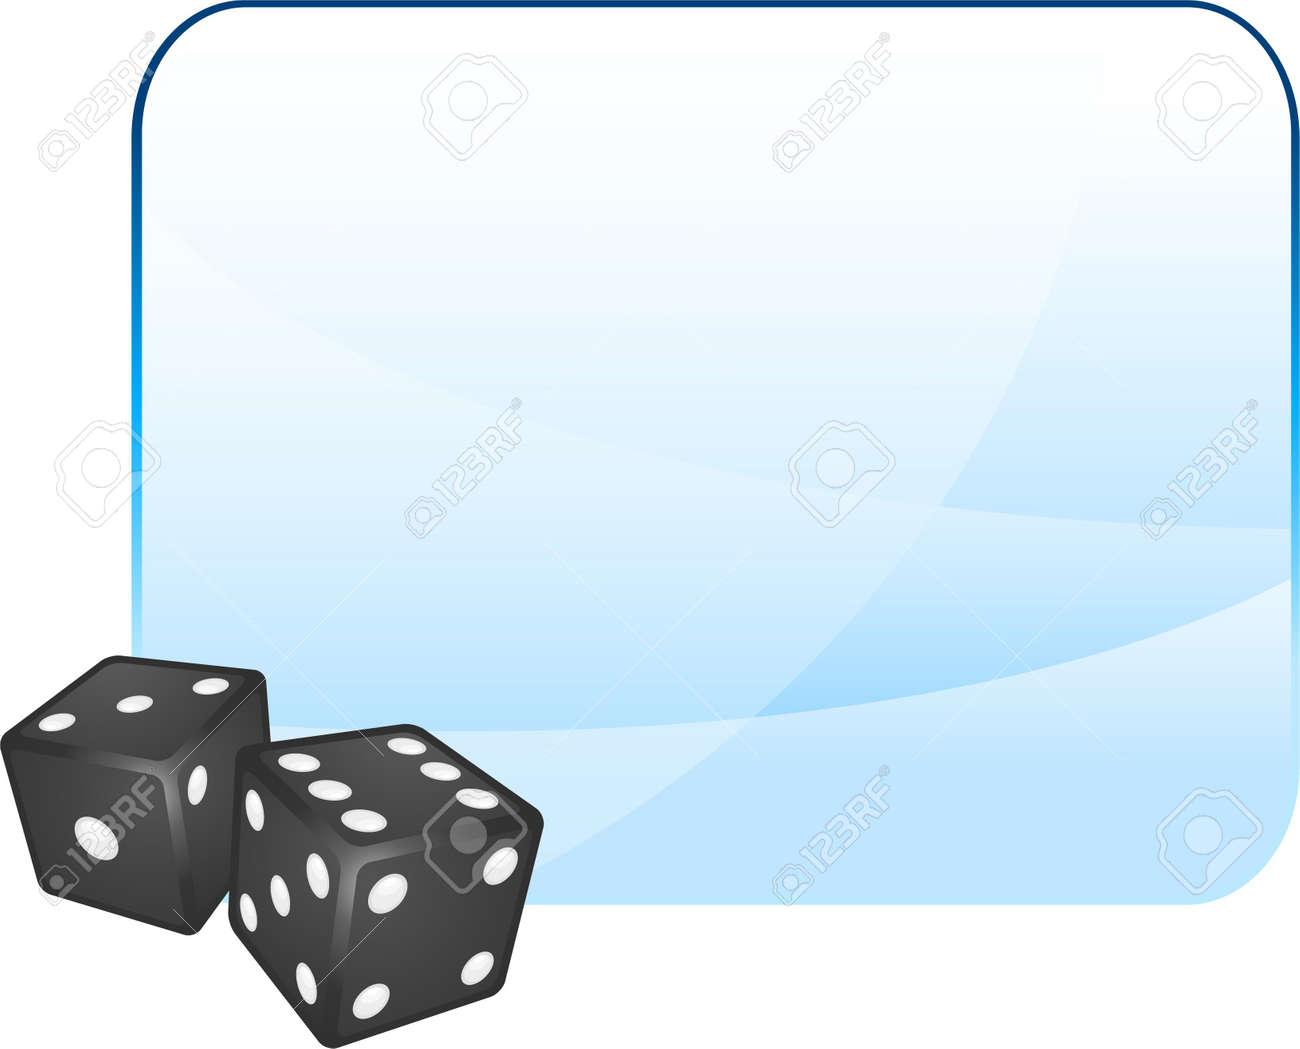 Black Dice on Blank Background Original Illustration Dice Ideal for Game Concept Stock Photo - 6619272